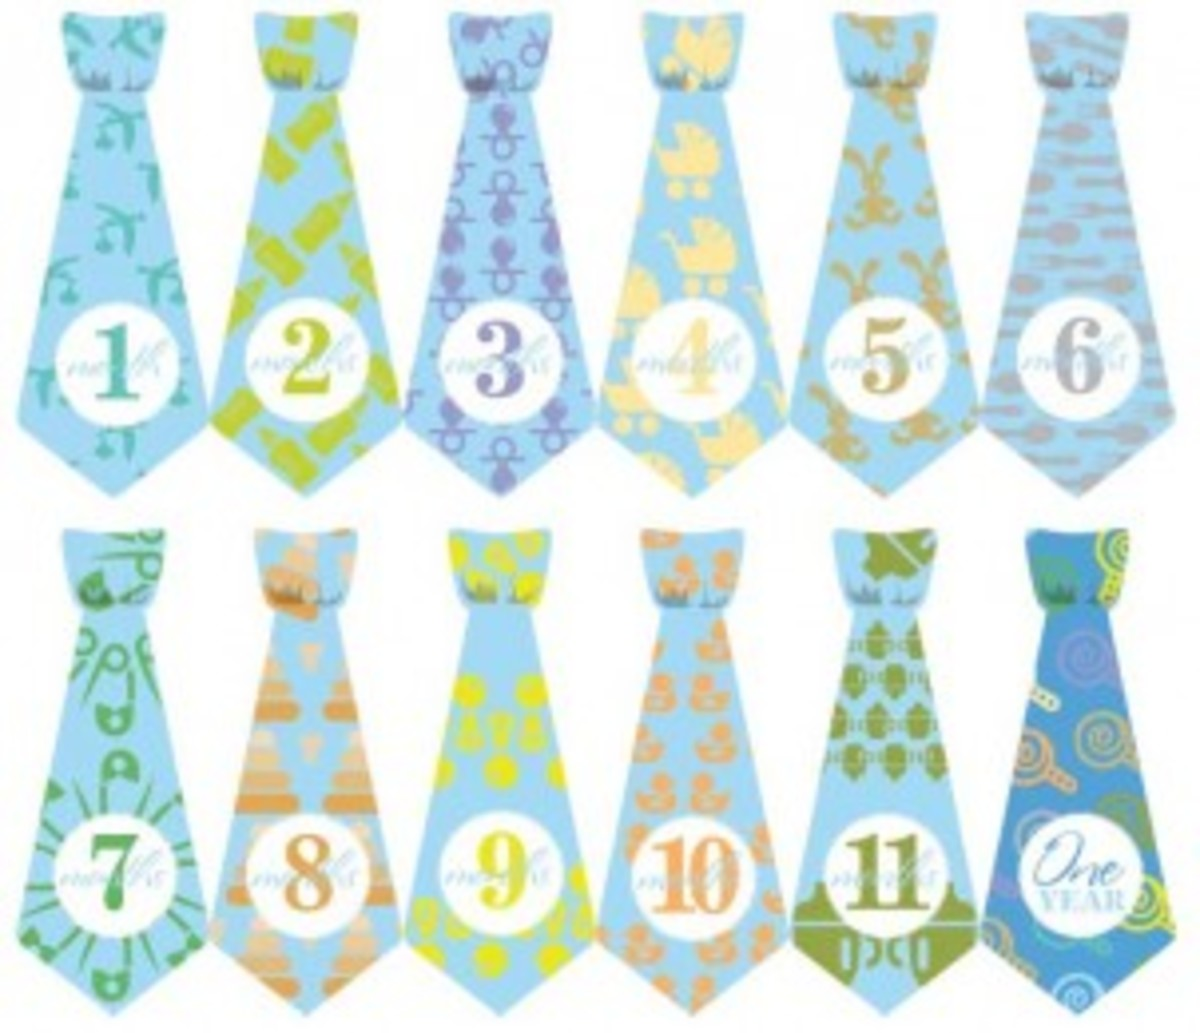 Evrewares Wearable Fabric Stickers For All Occasion Fun